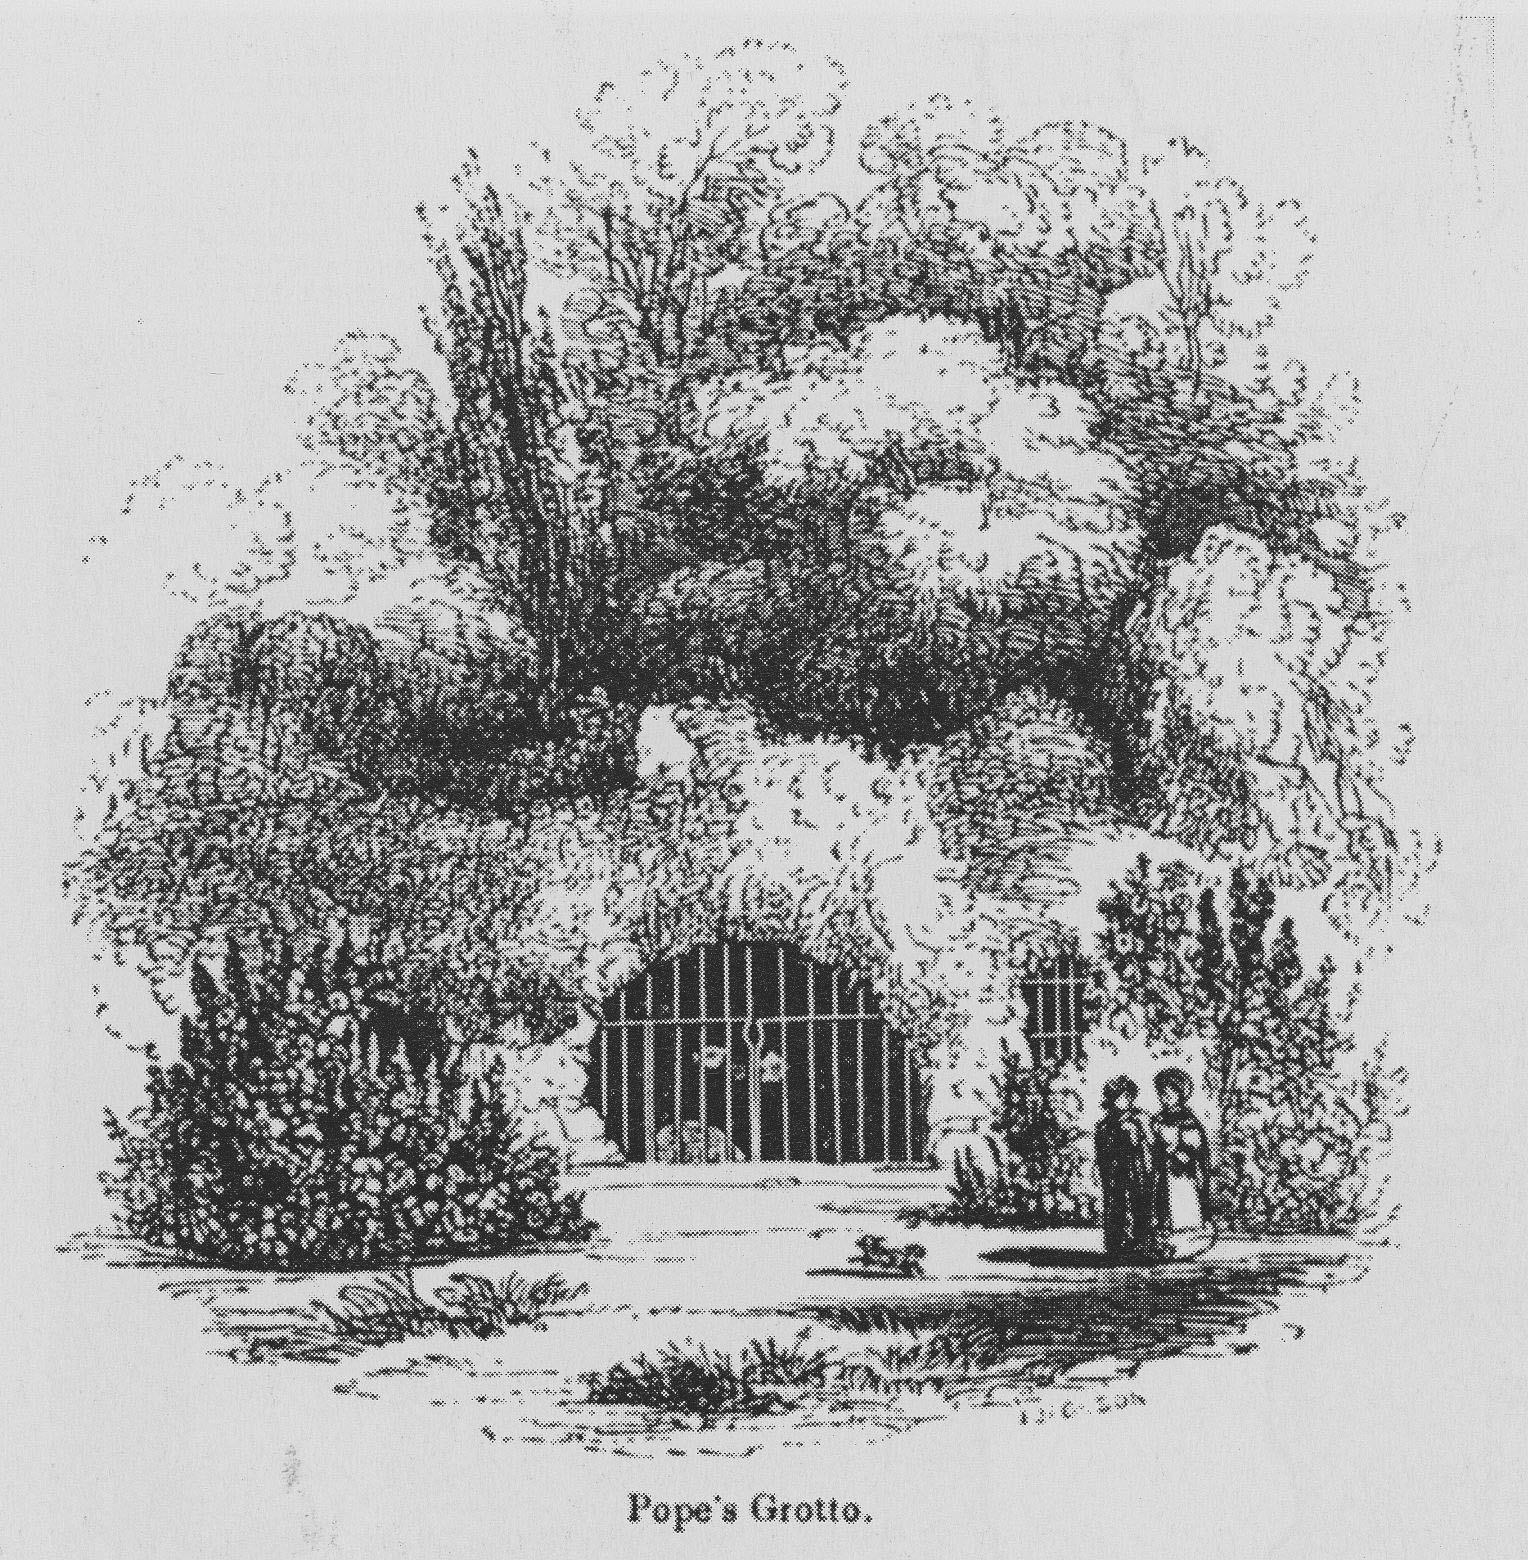 Pope's Grotto in 1845 after the demolition of his Villa